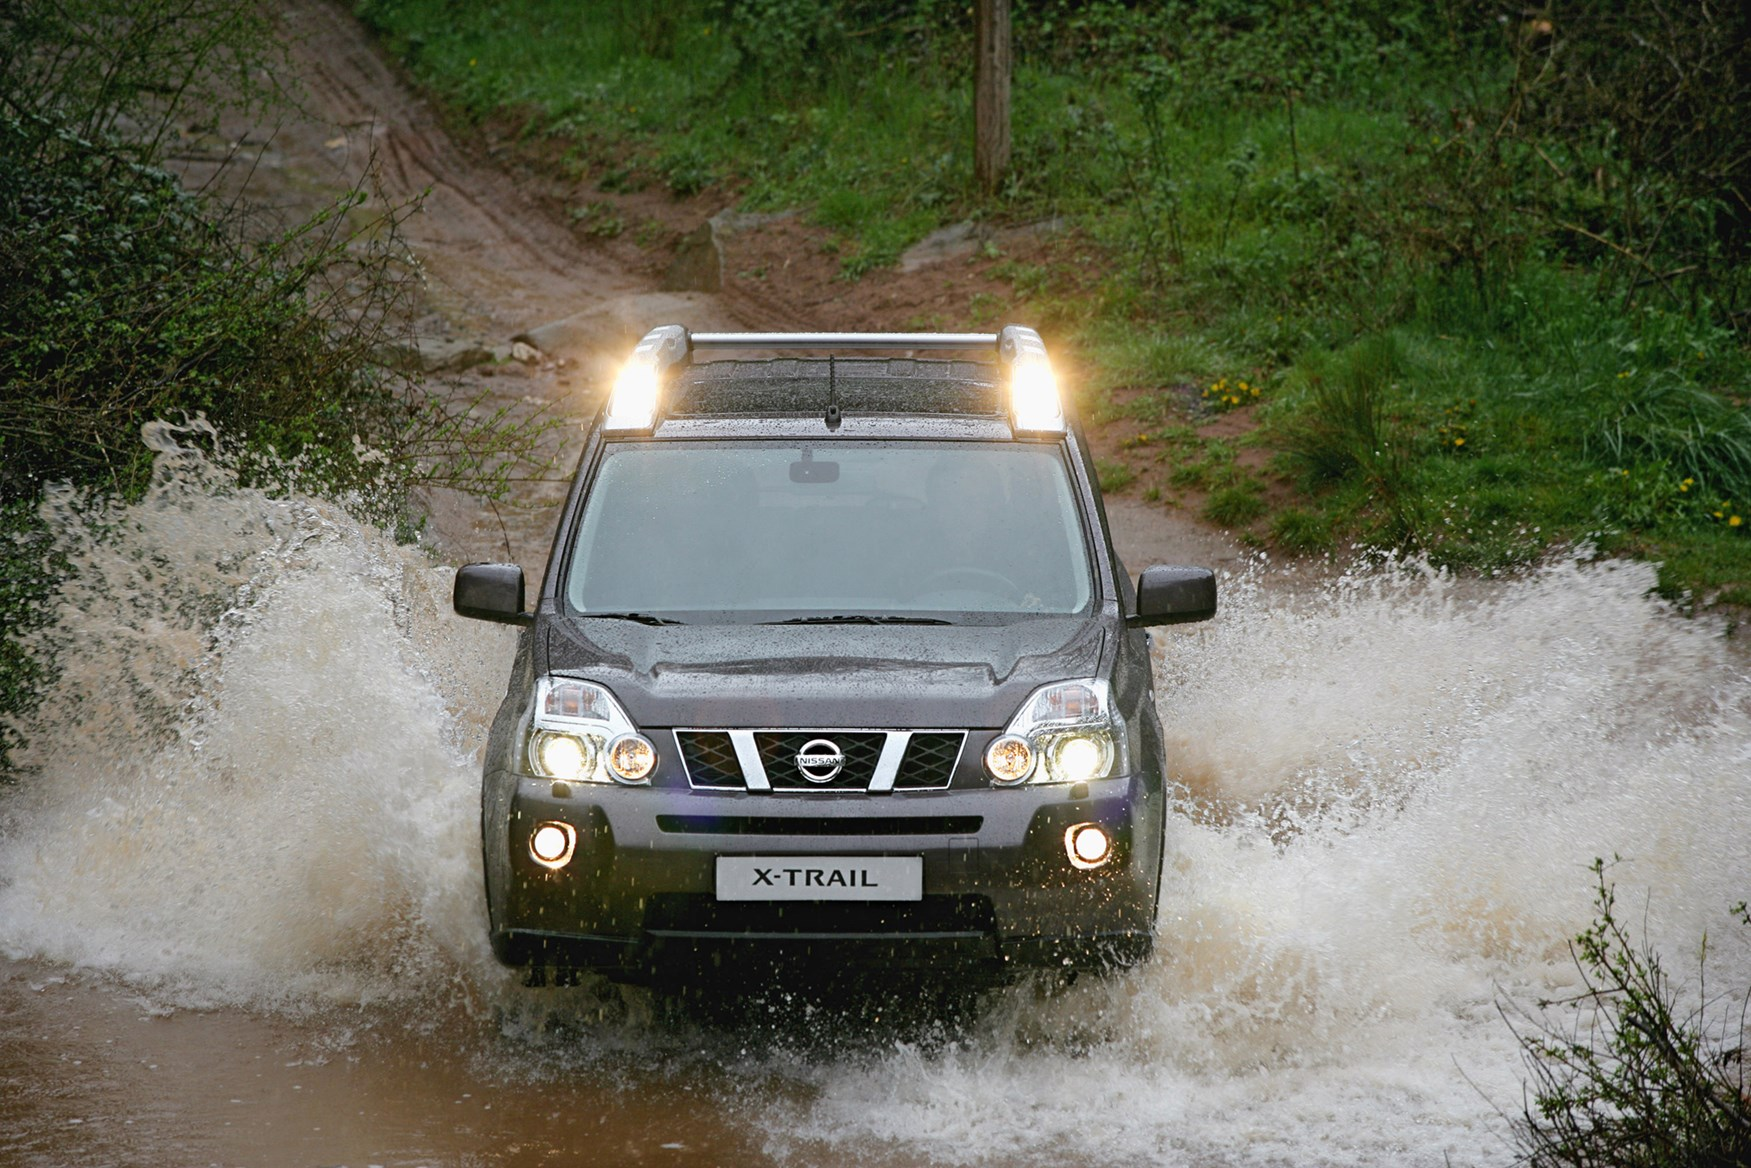 View all images of the Nissan X-Trail (07-14)